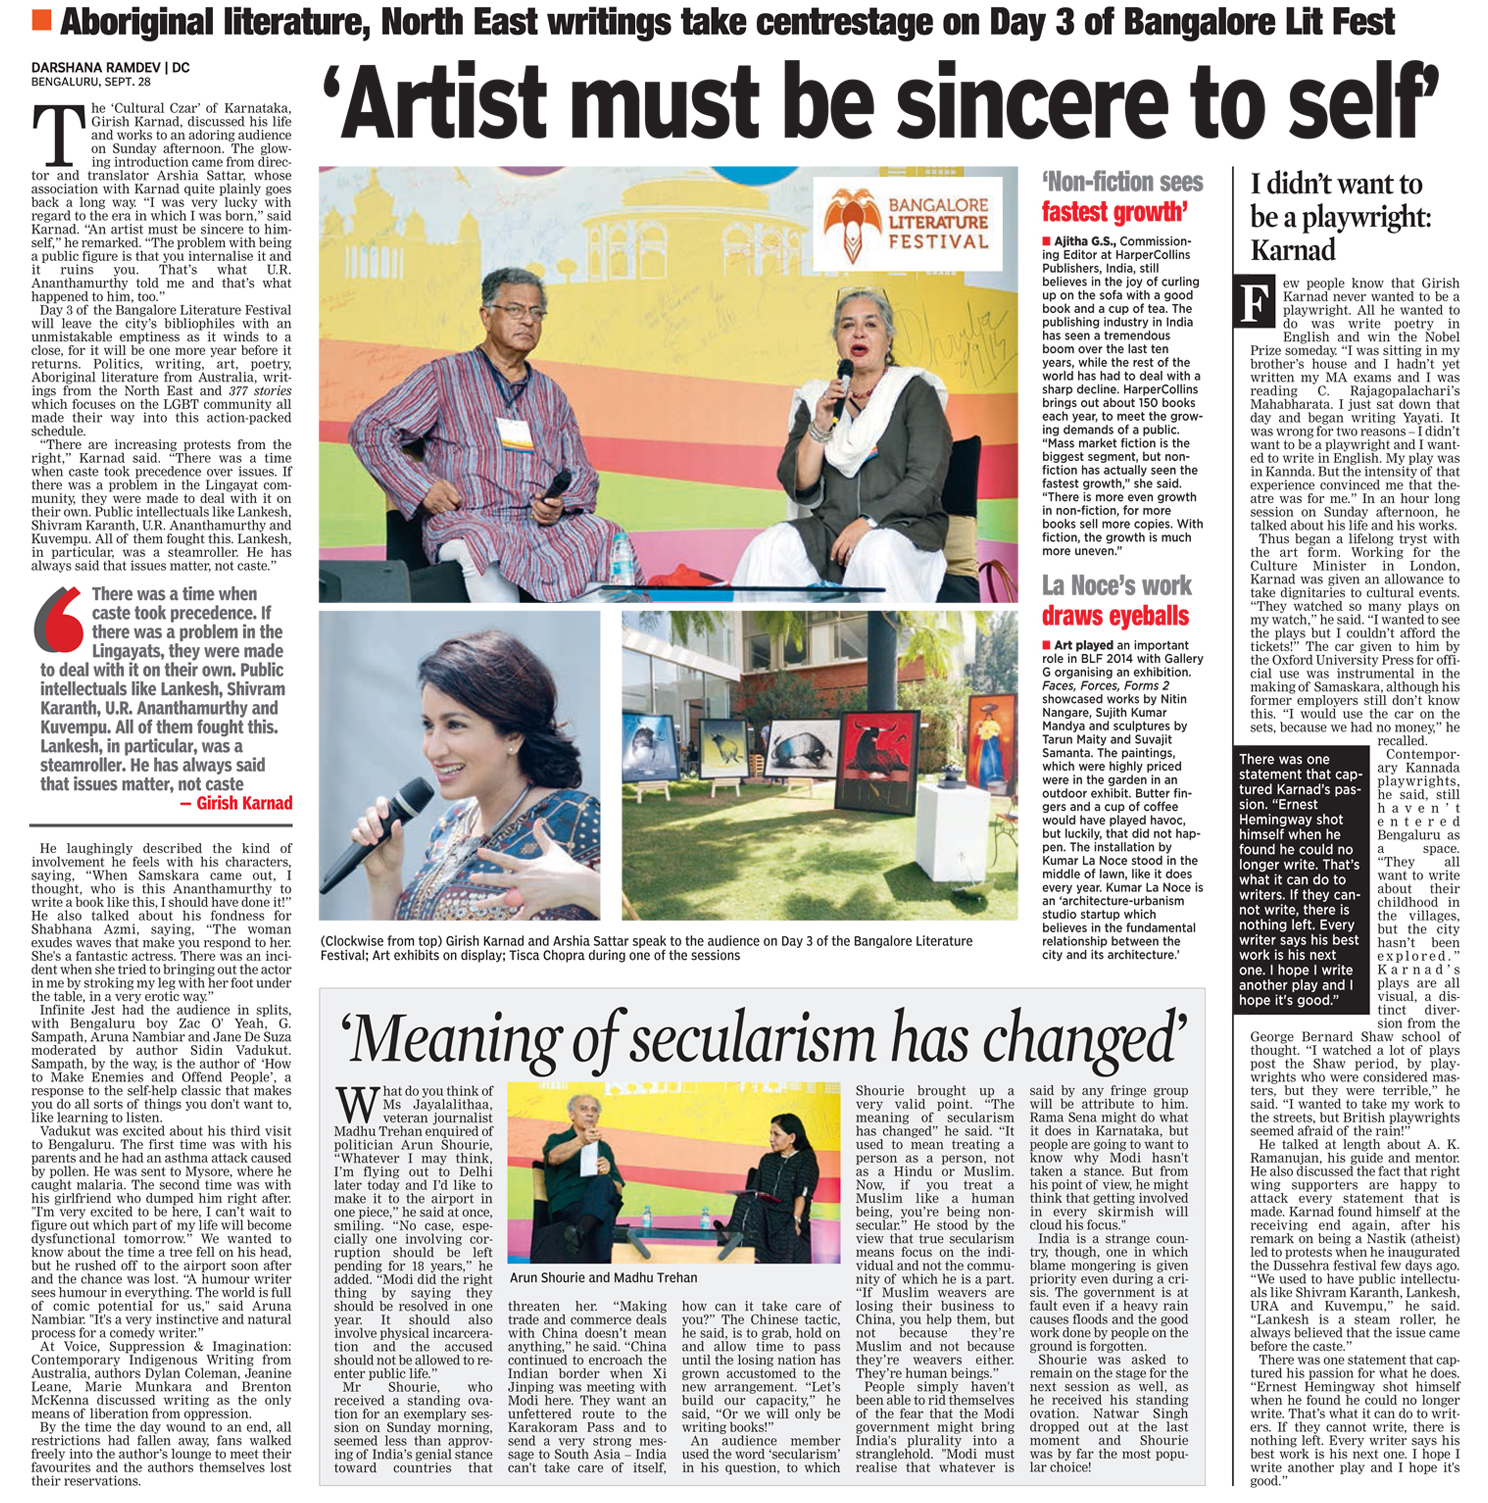 Deccan Chronicle, Page - 02, Date - 29.09.2014